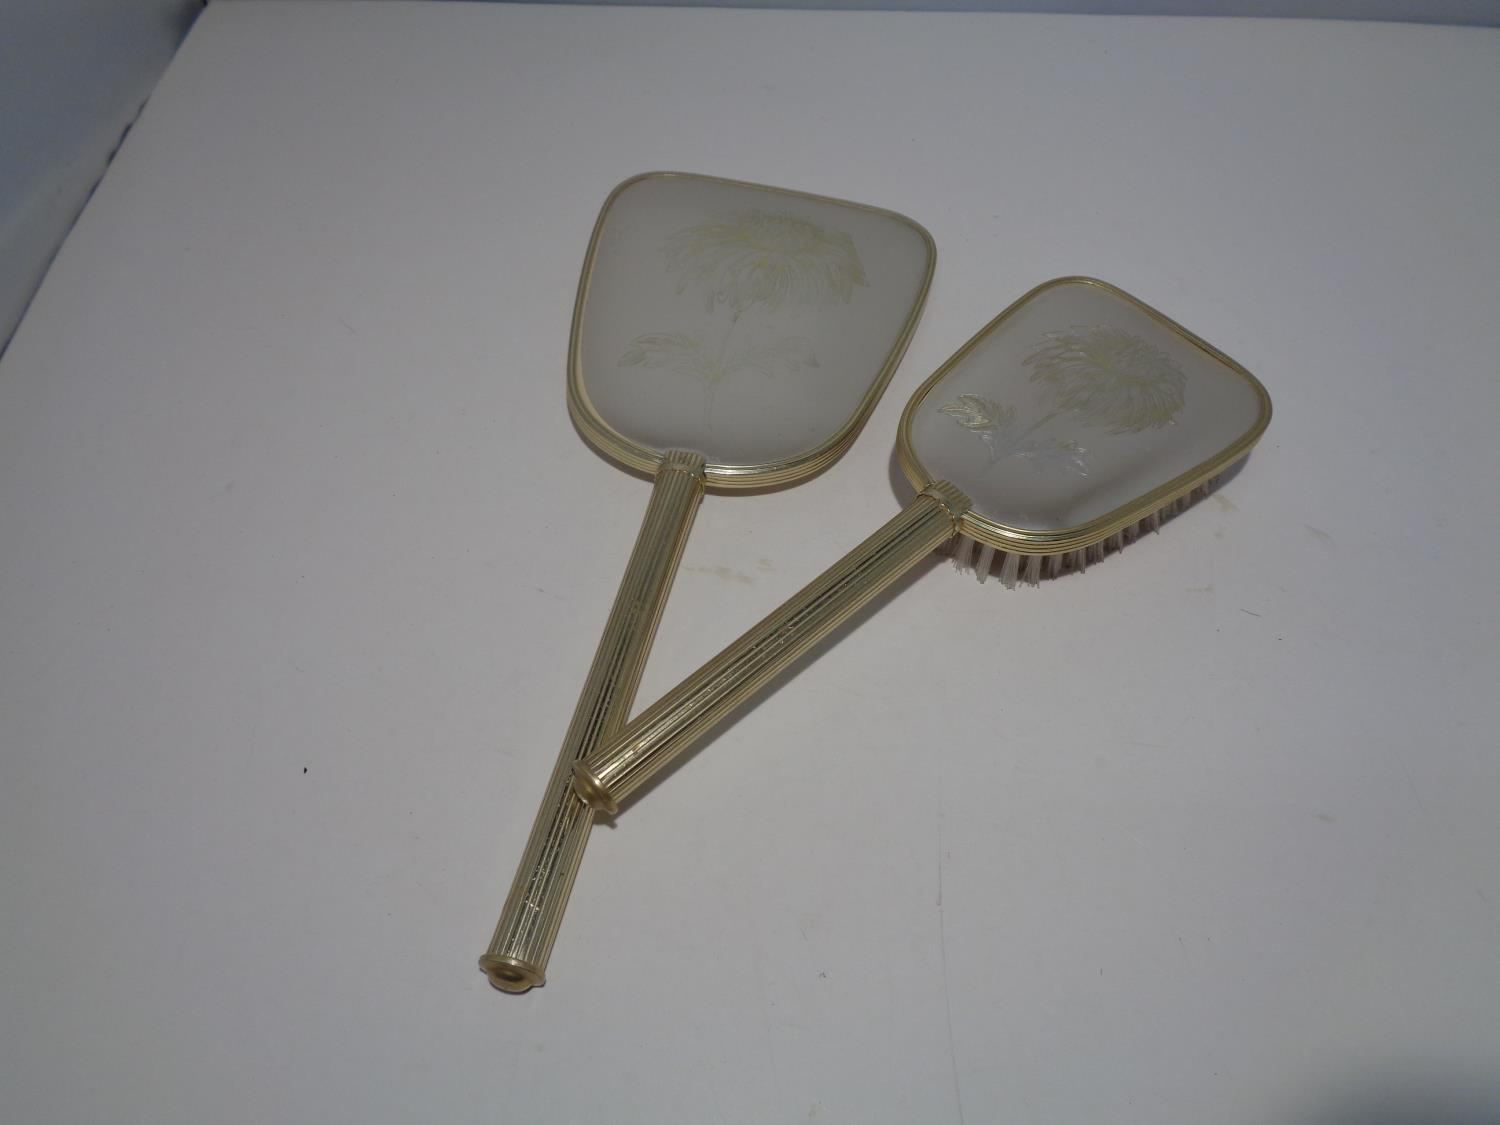 A DRESSING TABLE SET TO INCLUDE A HAND MIRROR AND MATCHING BRUSH